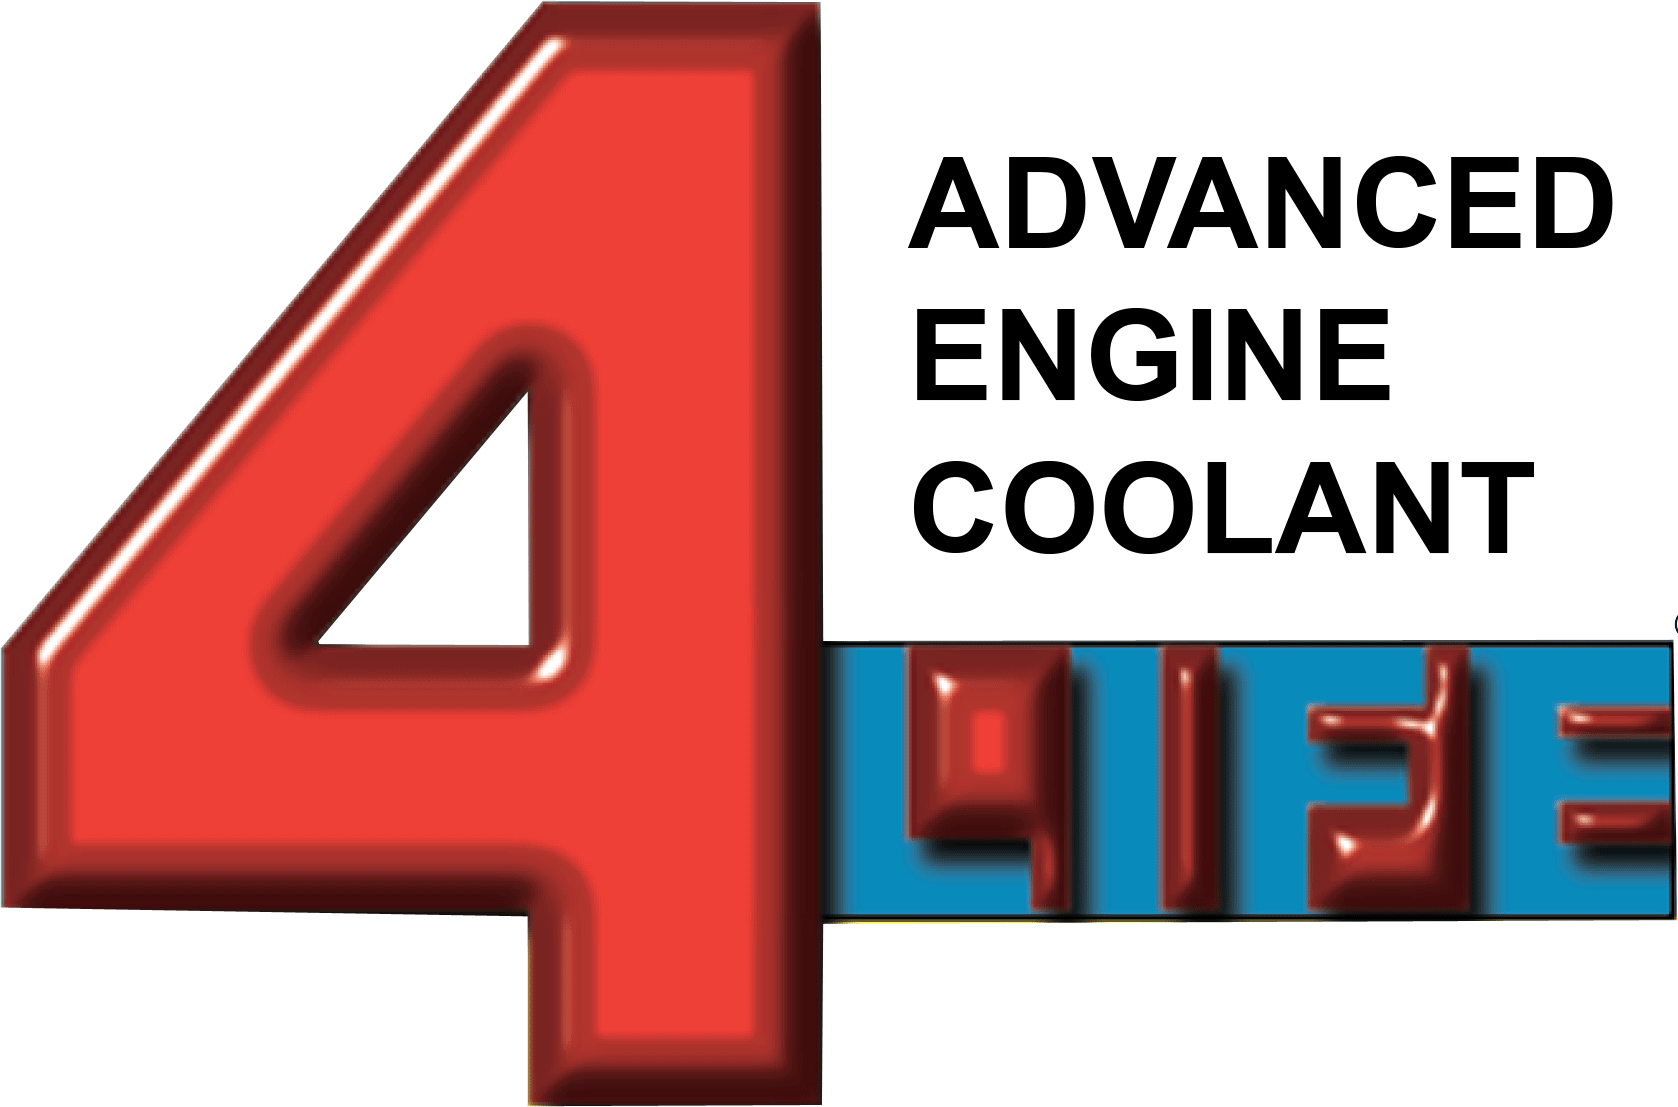 Forlife the advanced engine coolant logo